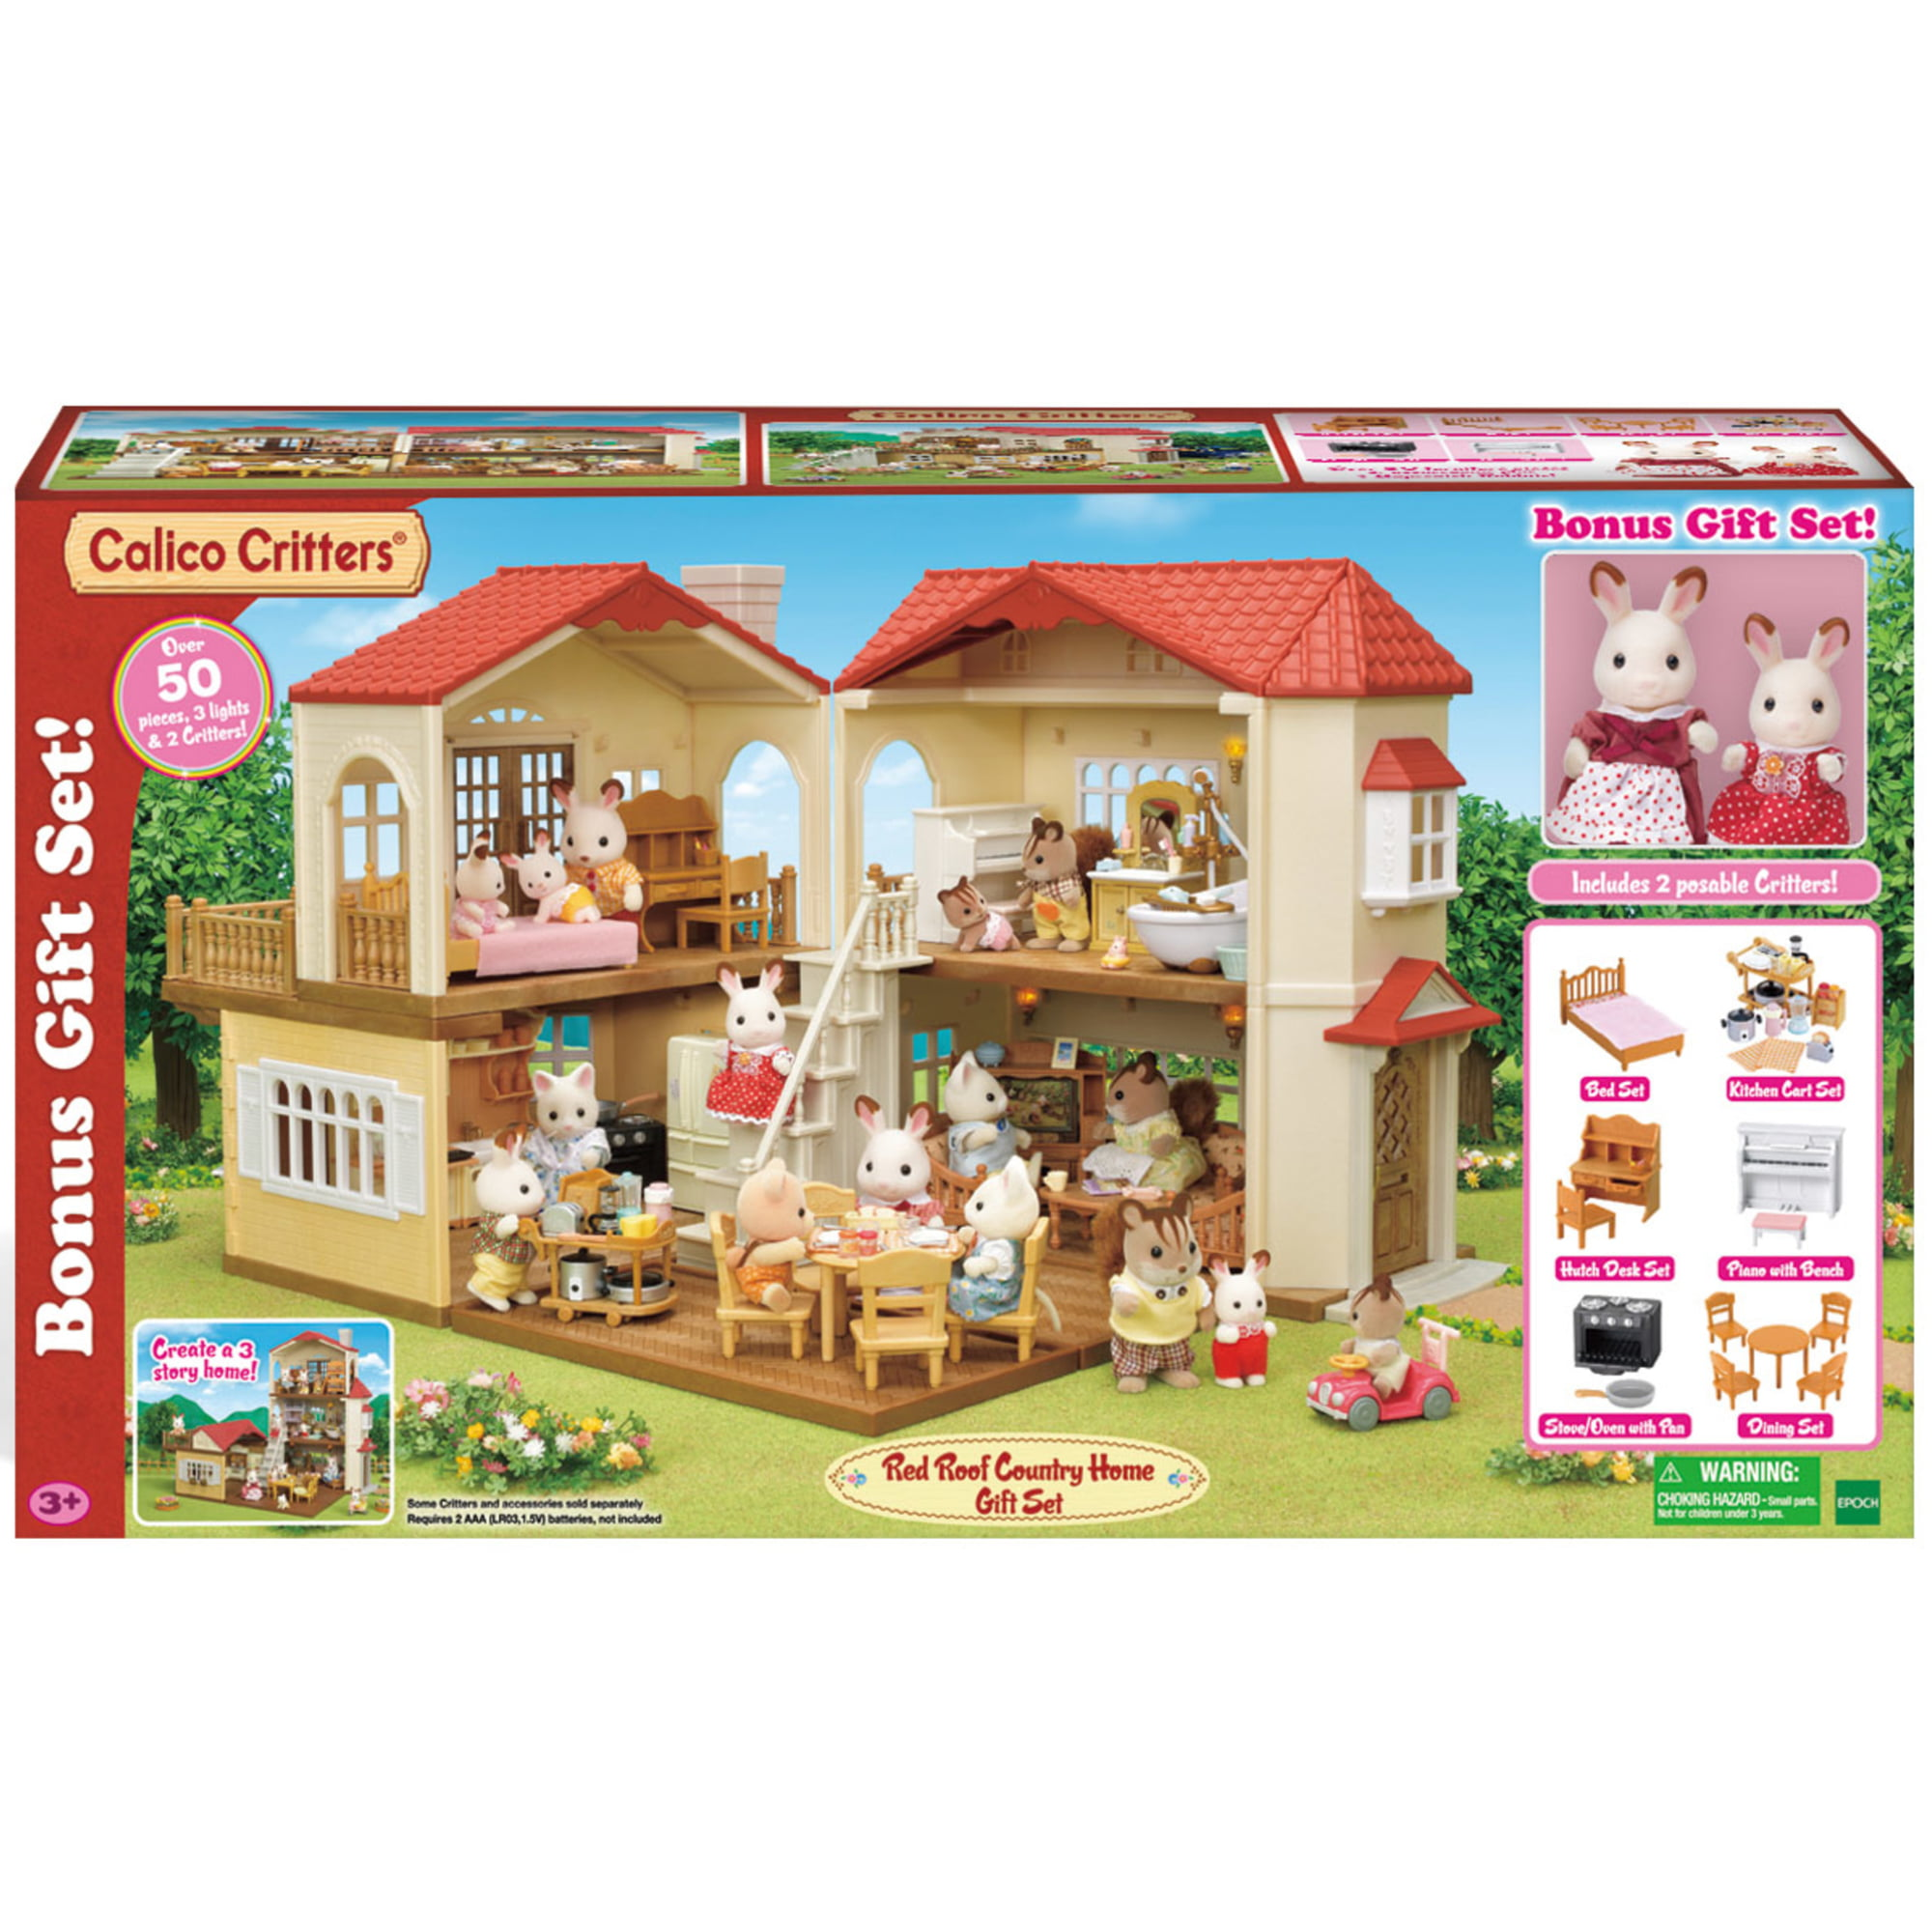 Calico Critters Luxury Townhome Gift Set Kids Big Toys